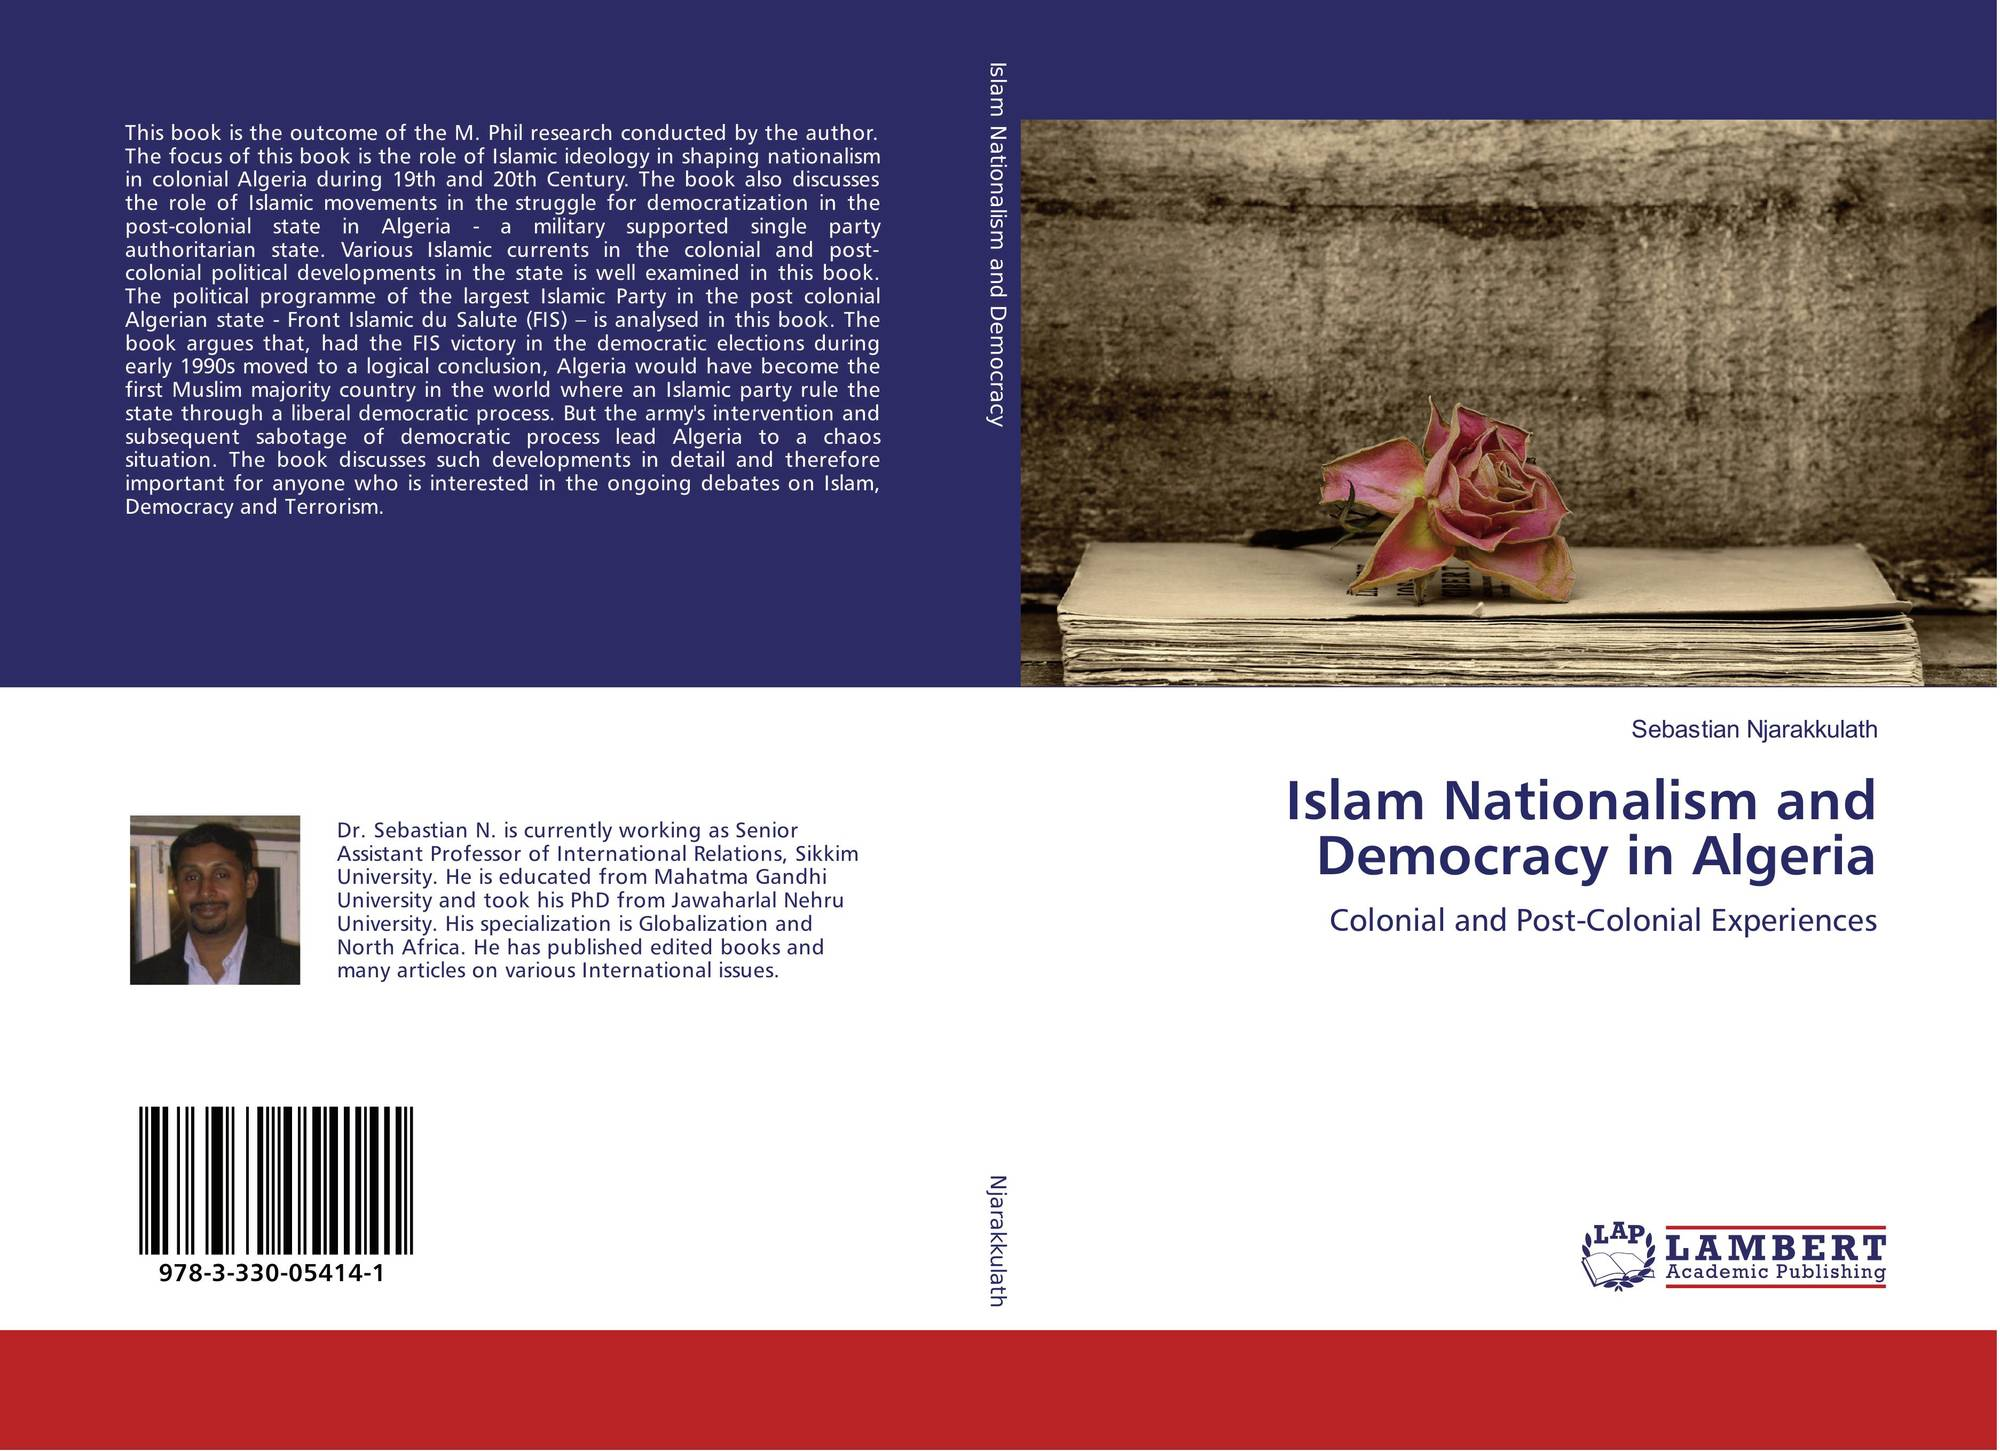 an introduction to the analysis of liberal democracy in the united states Analysis mostly failed to capture or even acknowledge what a liberal democracy is or how it behaves, particularly in policies towards individual citizens in the absence of.